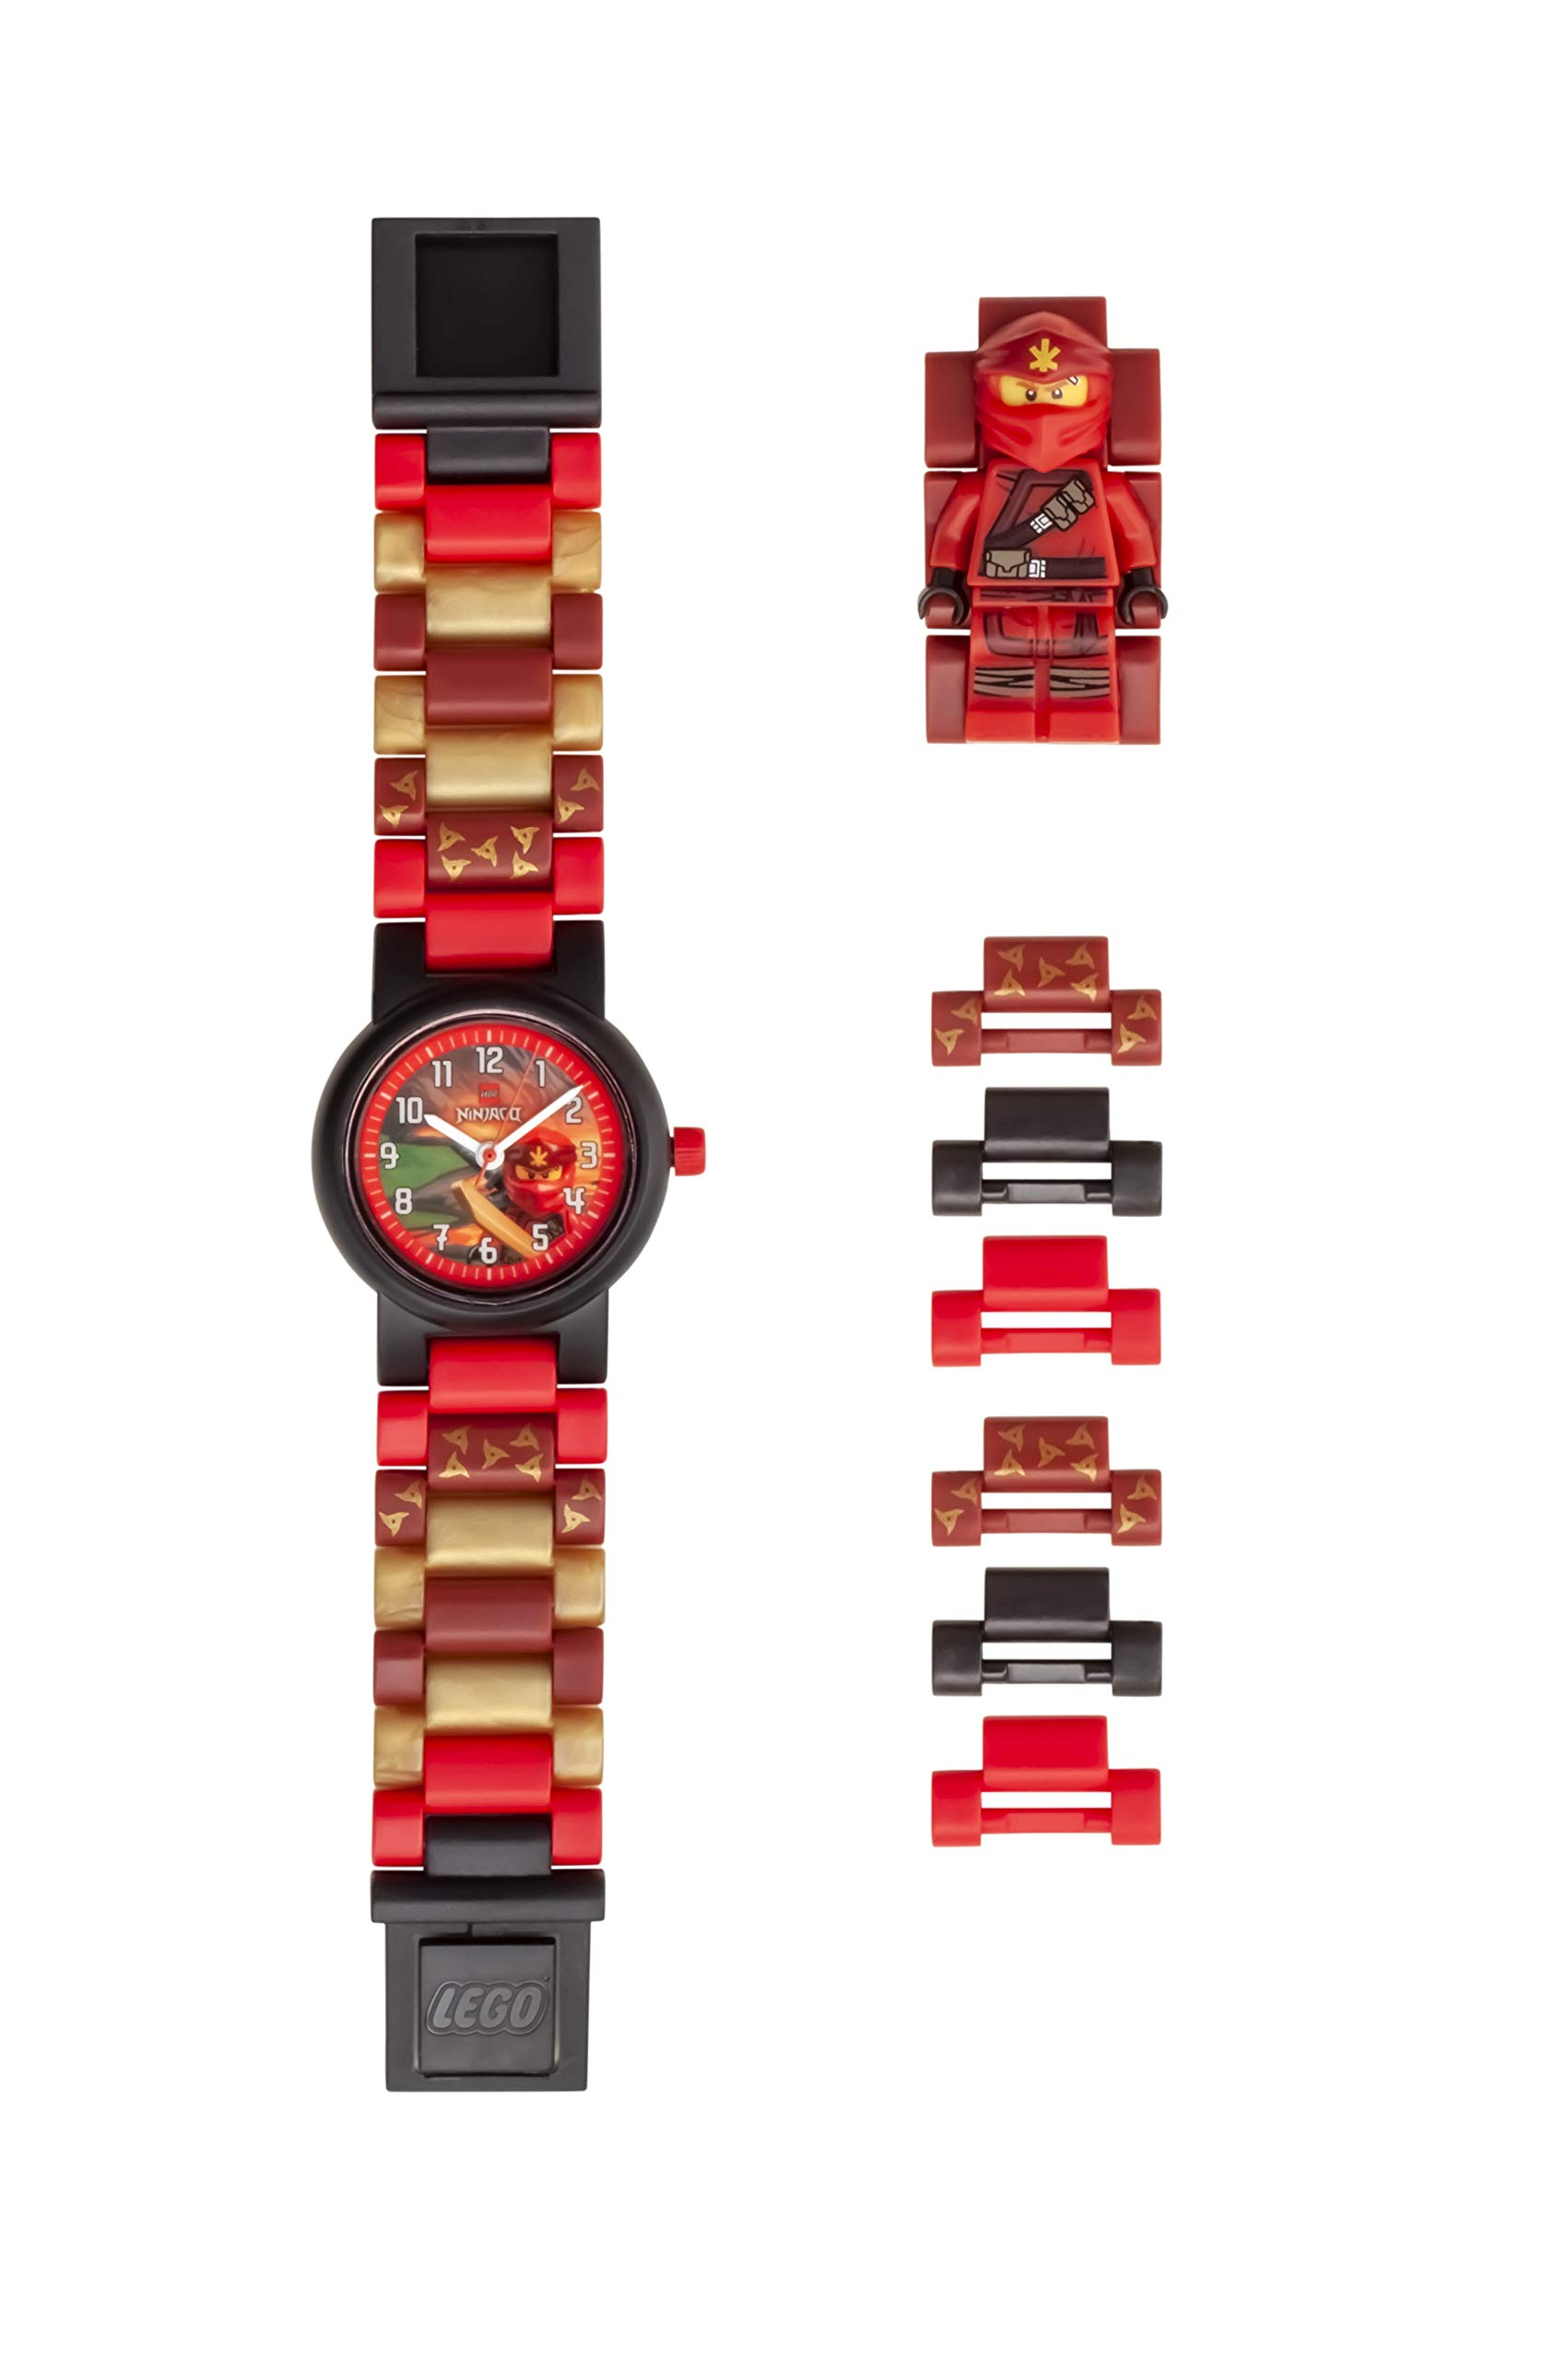 ClicTime Boys' LEGO Ninjago Analog Quartz Watch with Plastic Strap, Red, 20 (Model: 8021643) by ClicTime